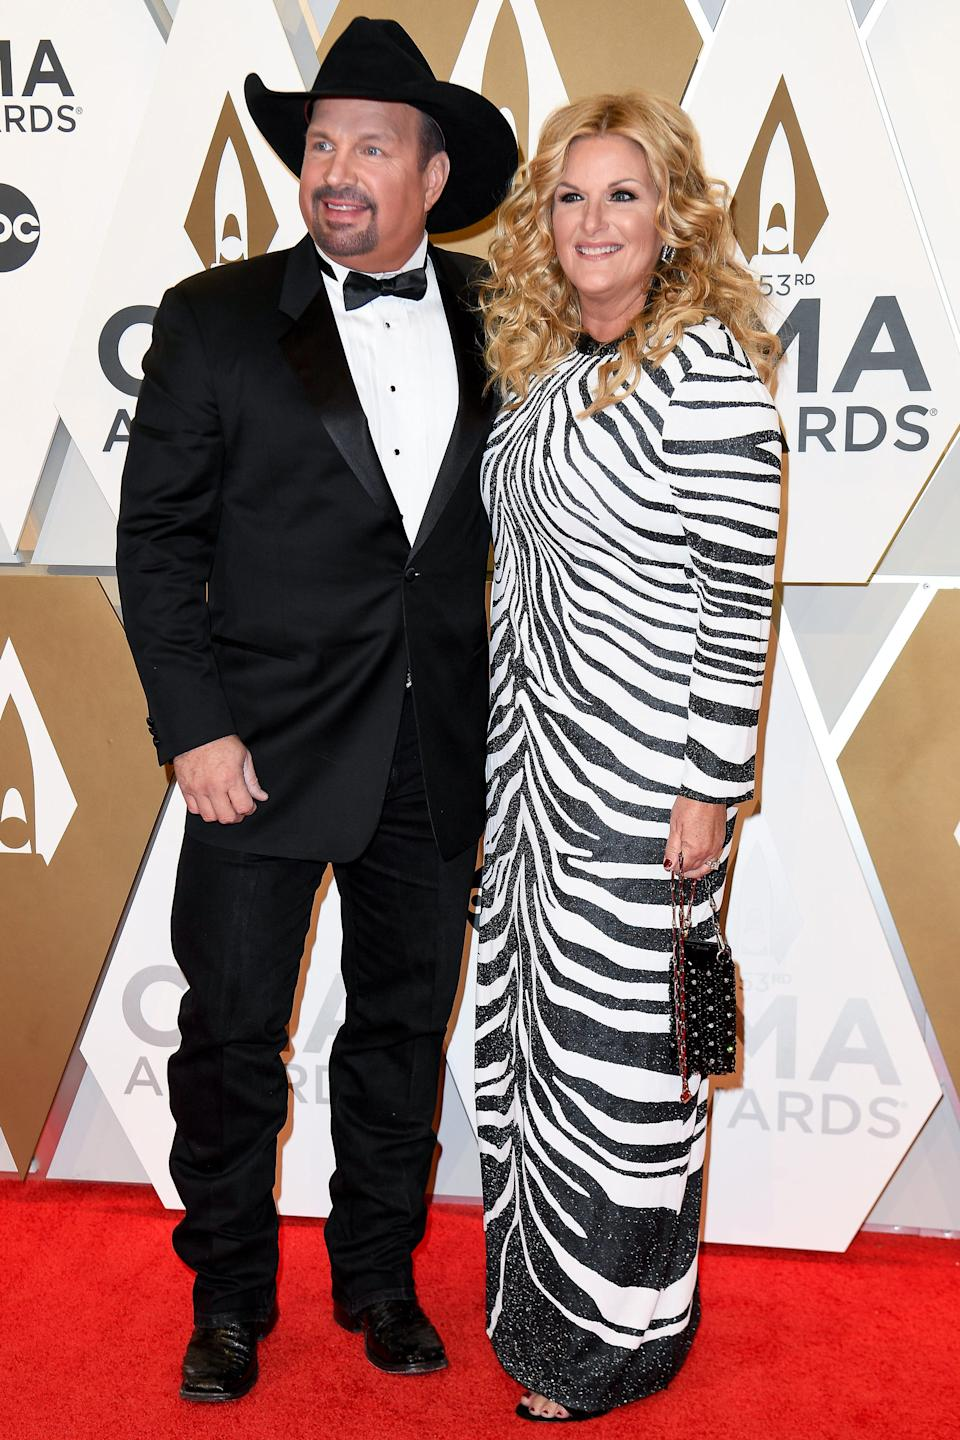 Garth Brooks and Trisha Yearwood on the red carpet during the 53rd Annual CMA Awards at Music City Center in Nashville, Tenn., Wednesday, Nov. 13, 2019.